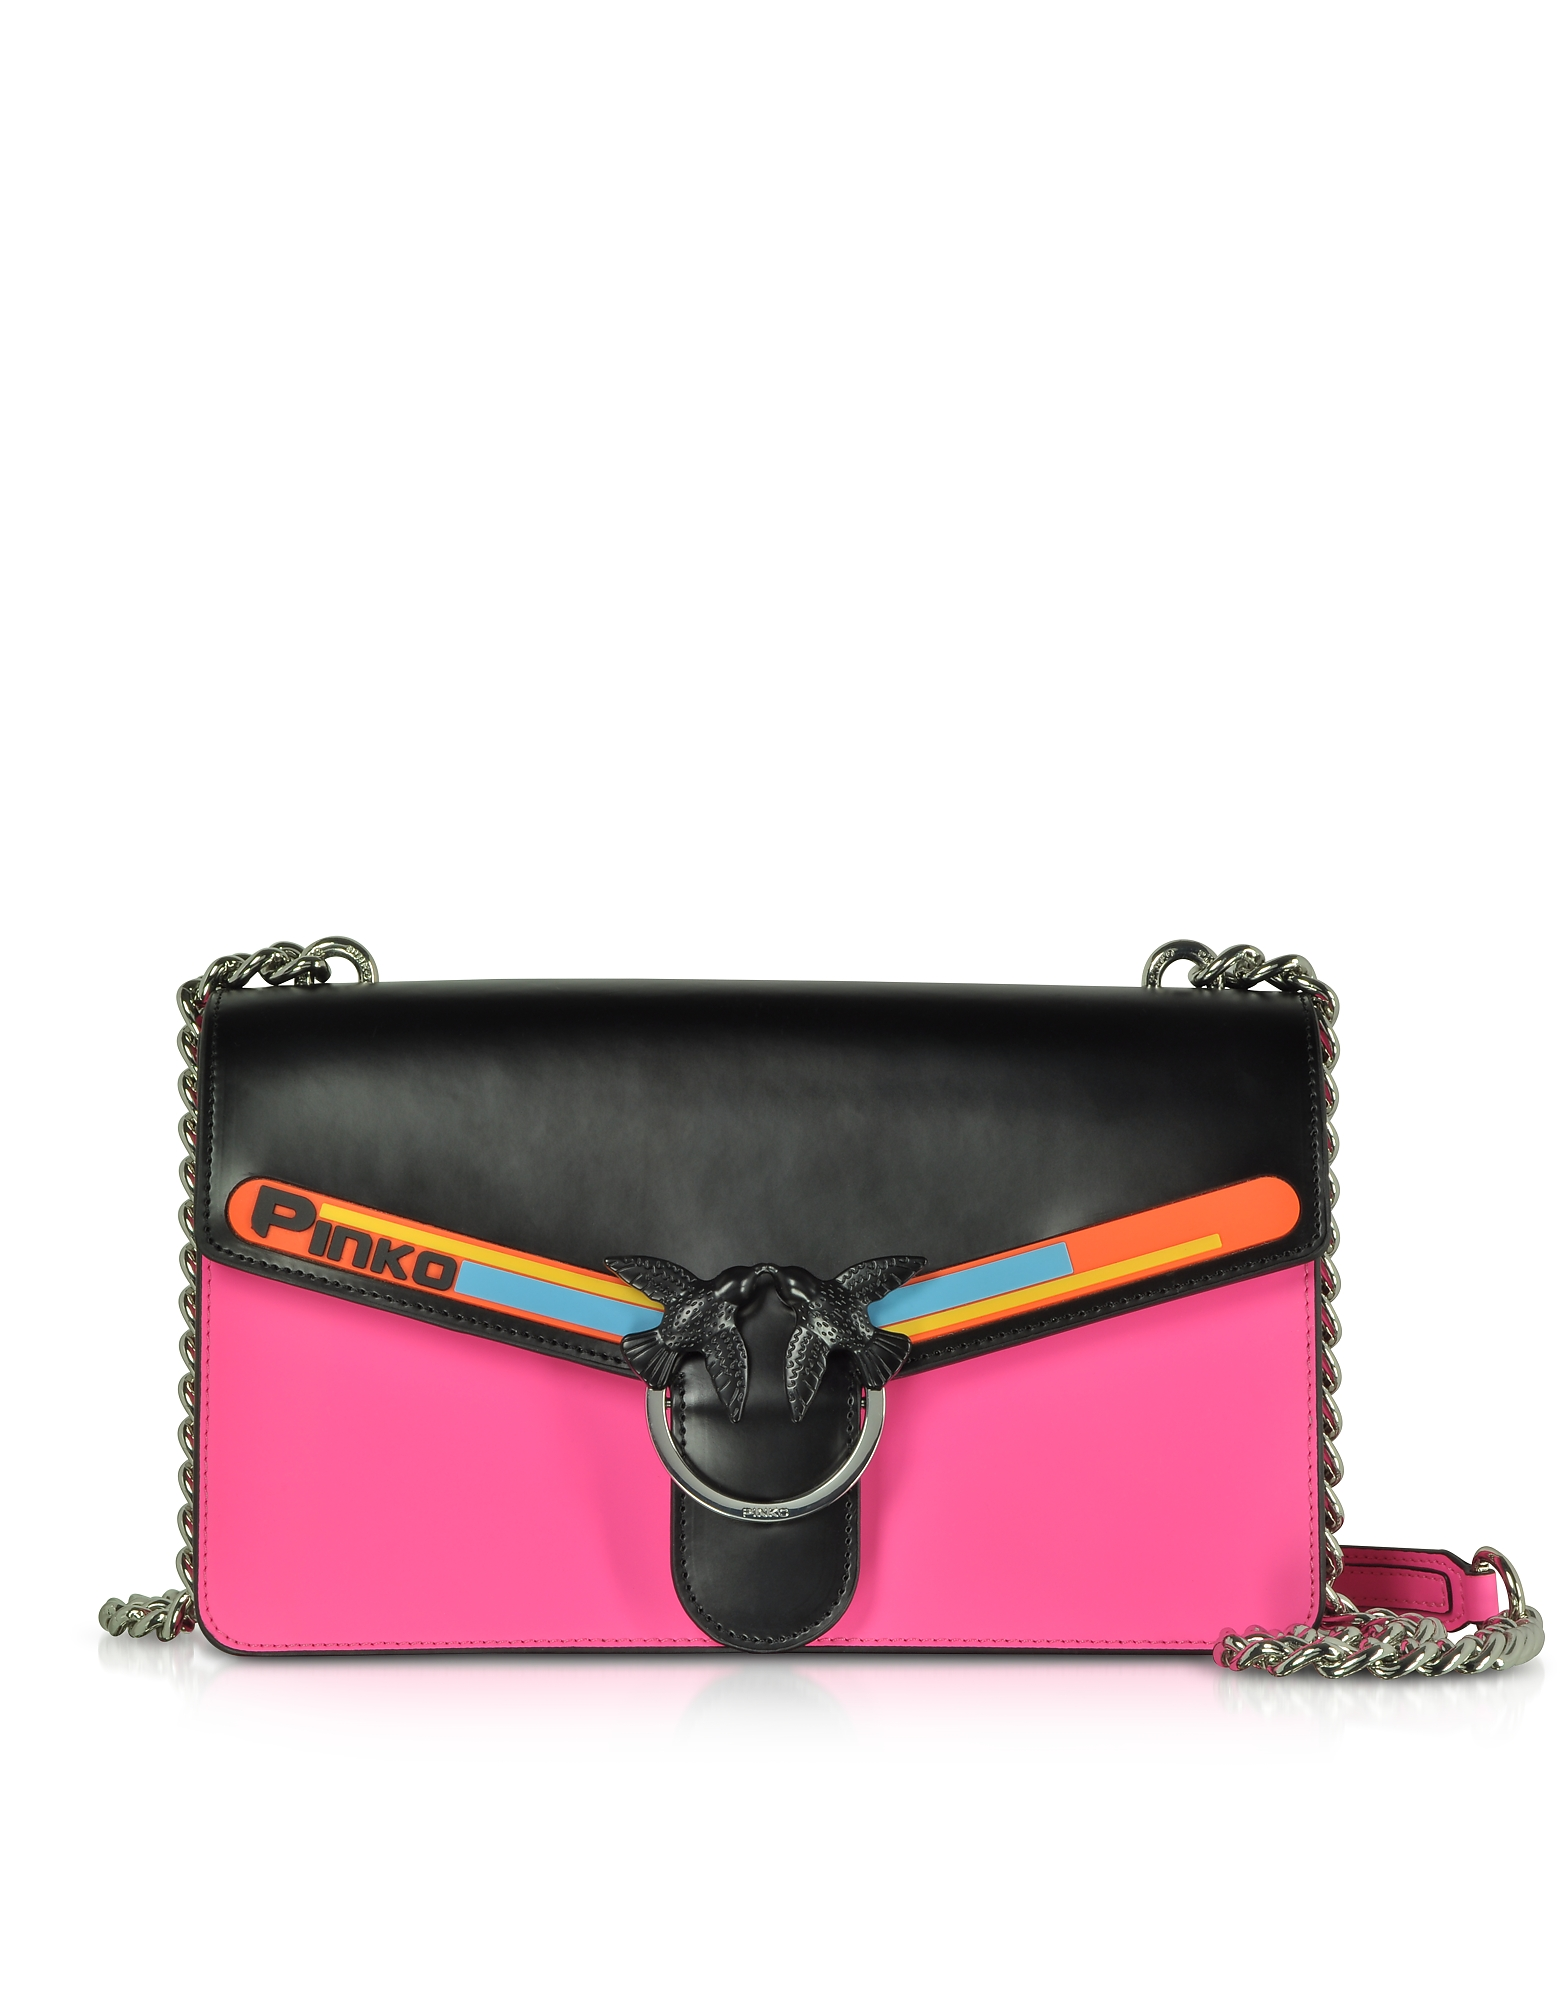 Black and Fuchsia Love Sport Shoulder Bag. Love Bag Sport crafted in two-tone Hi Shine leather with sports-inspired colorful rubber-coated effect band